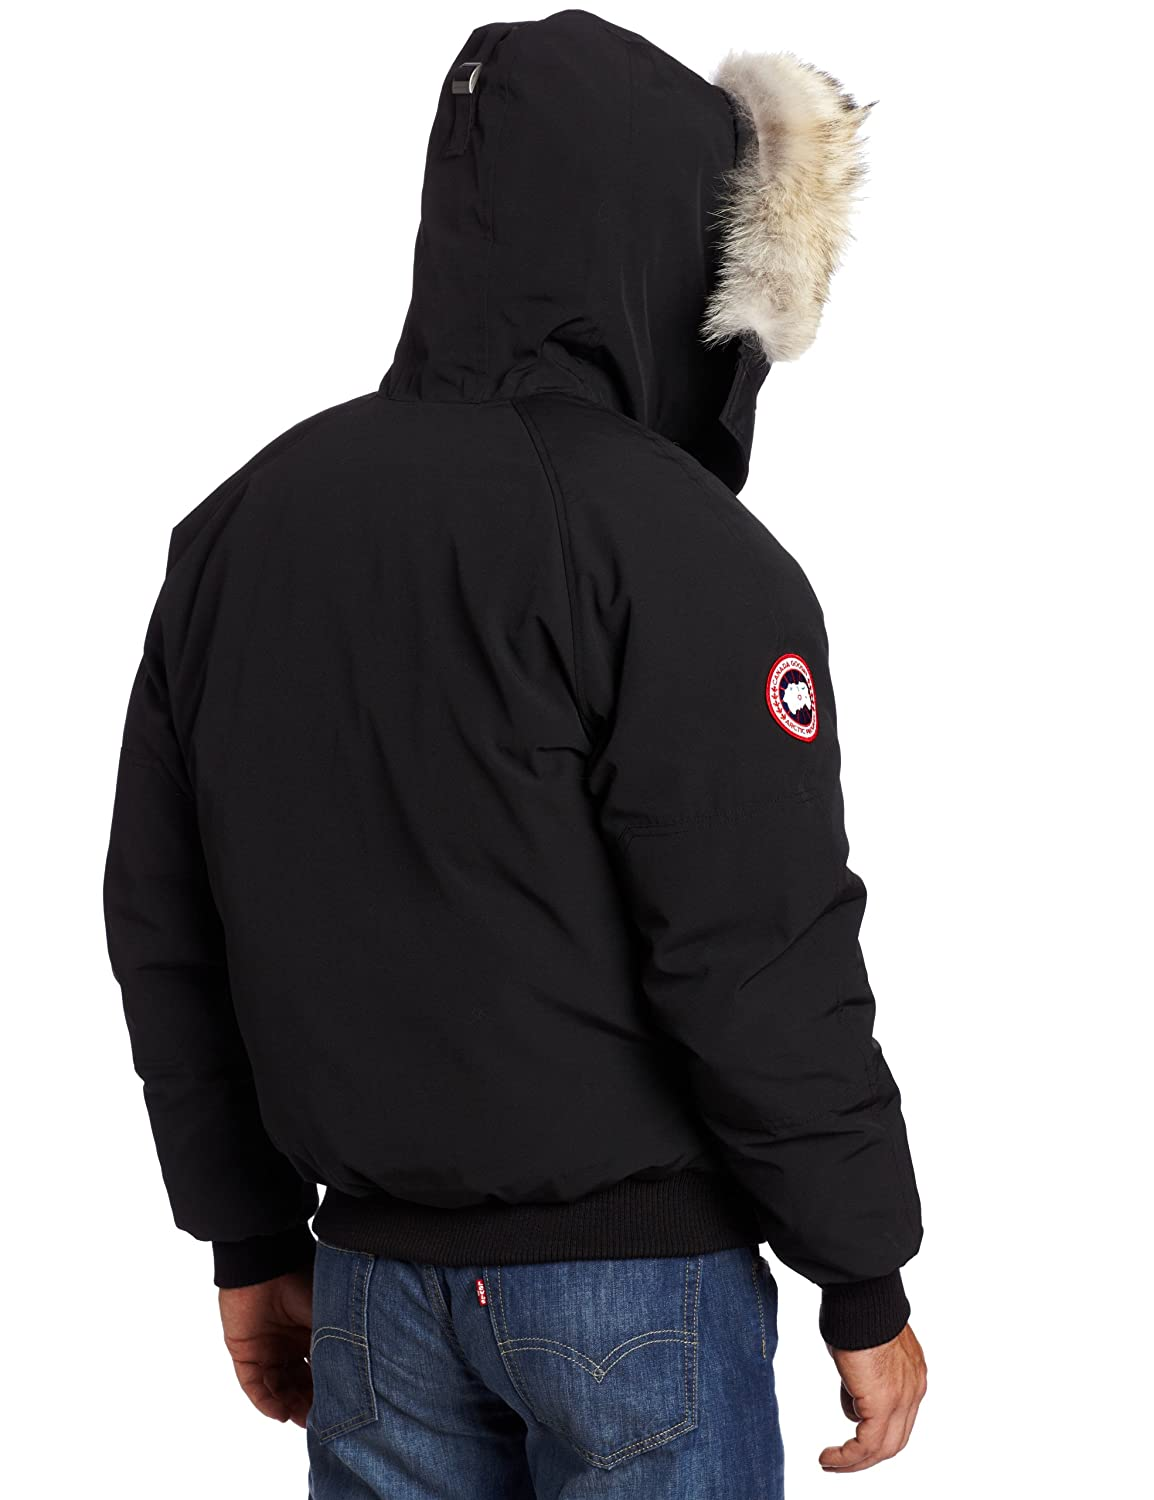 discount fashion canada goose replica